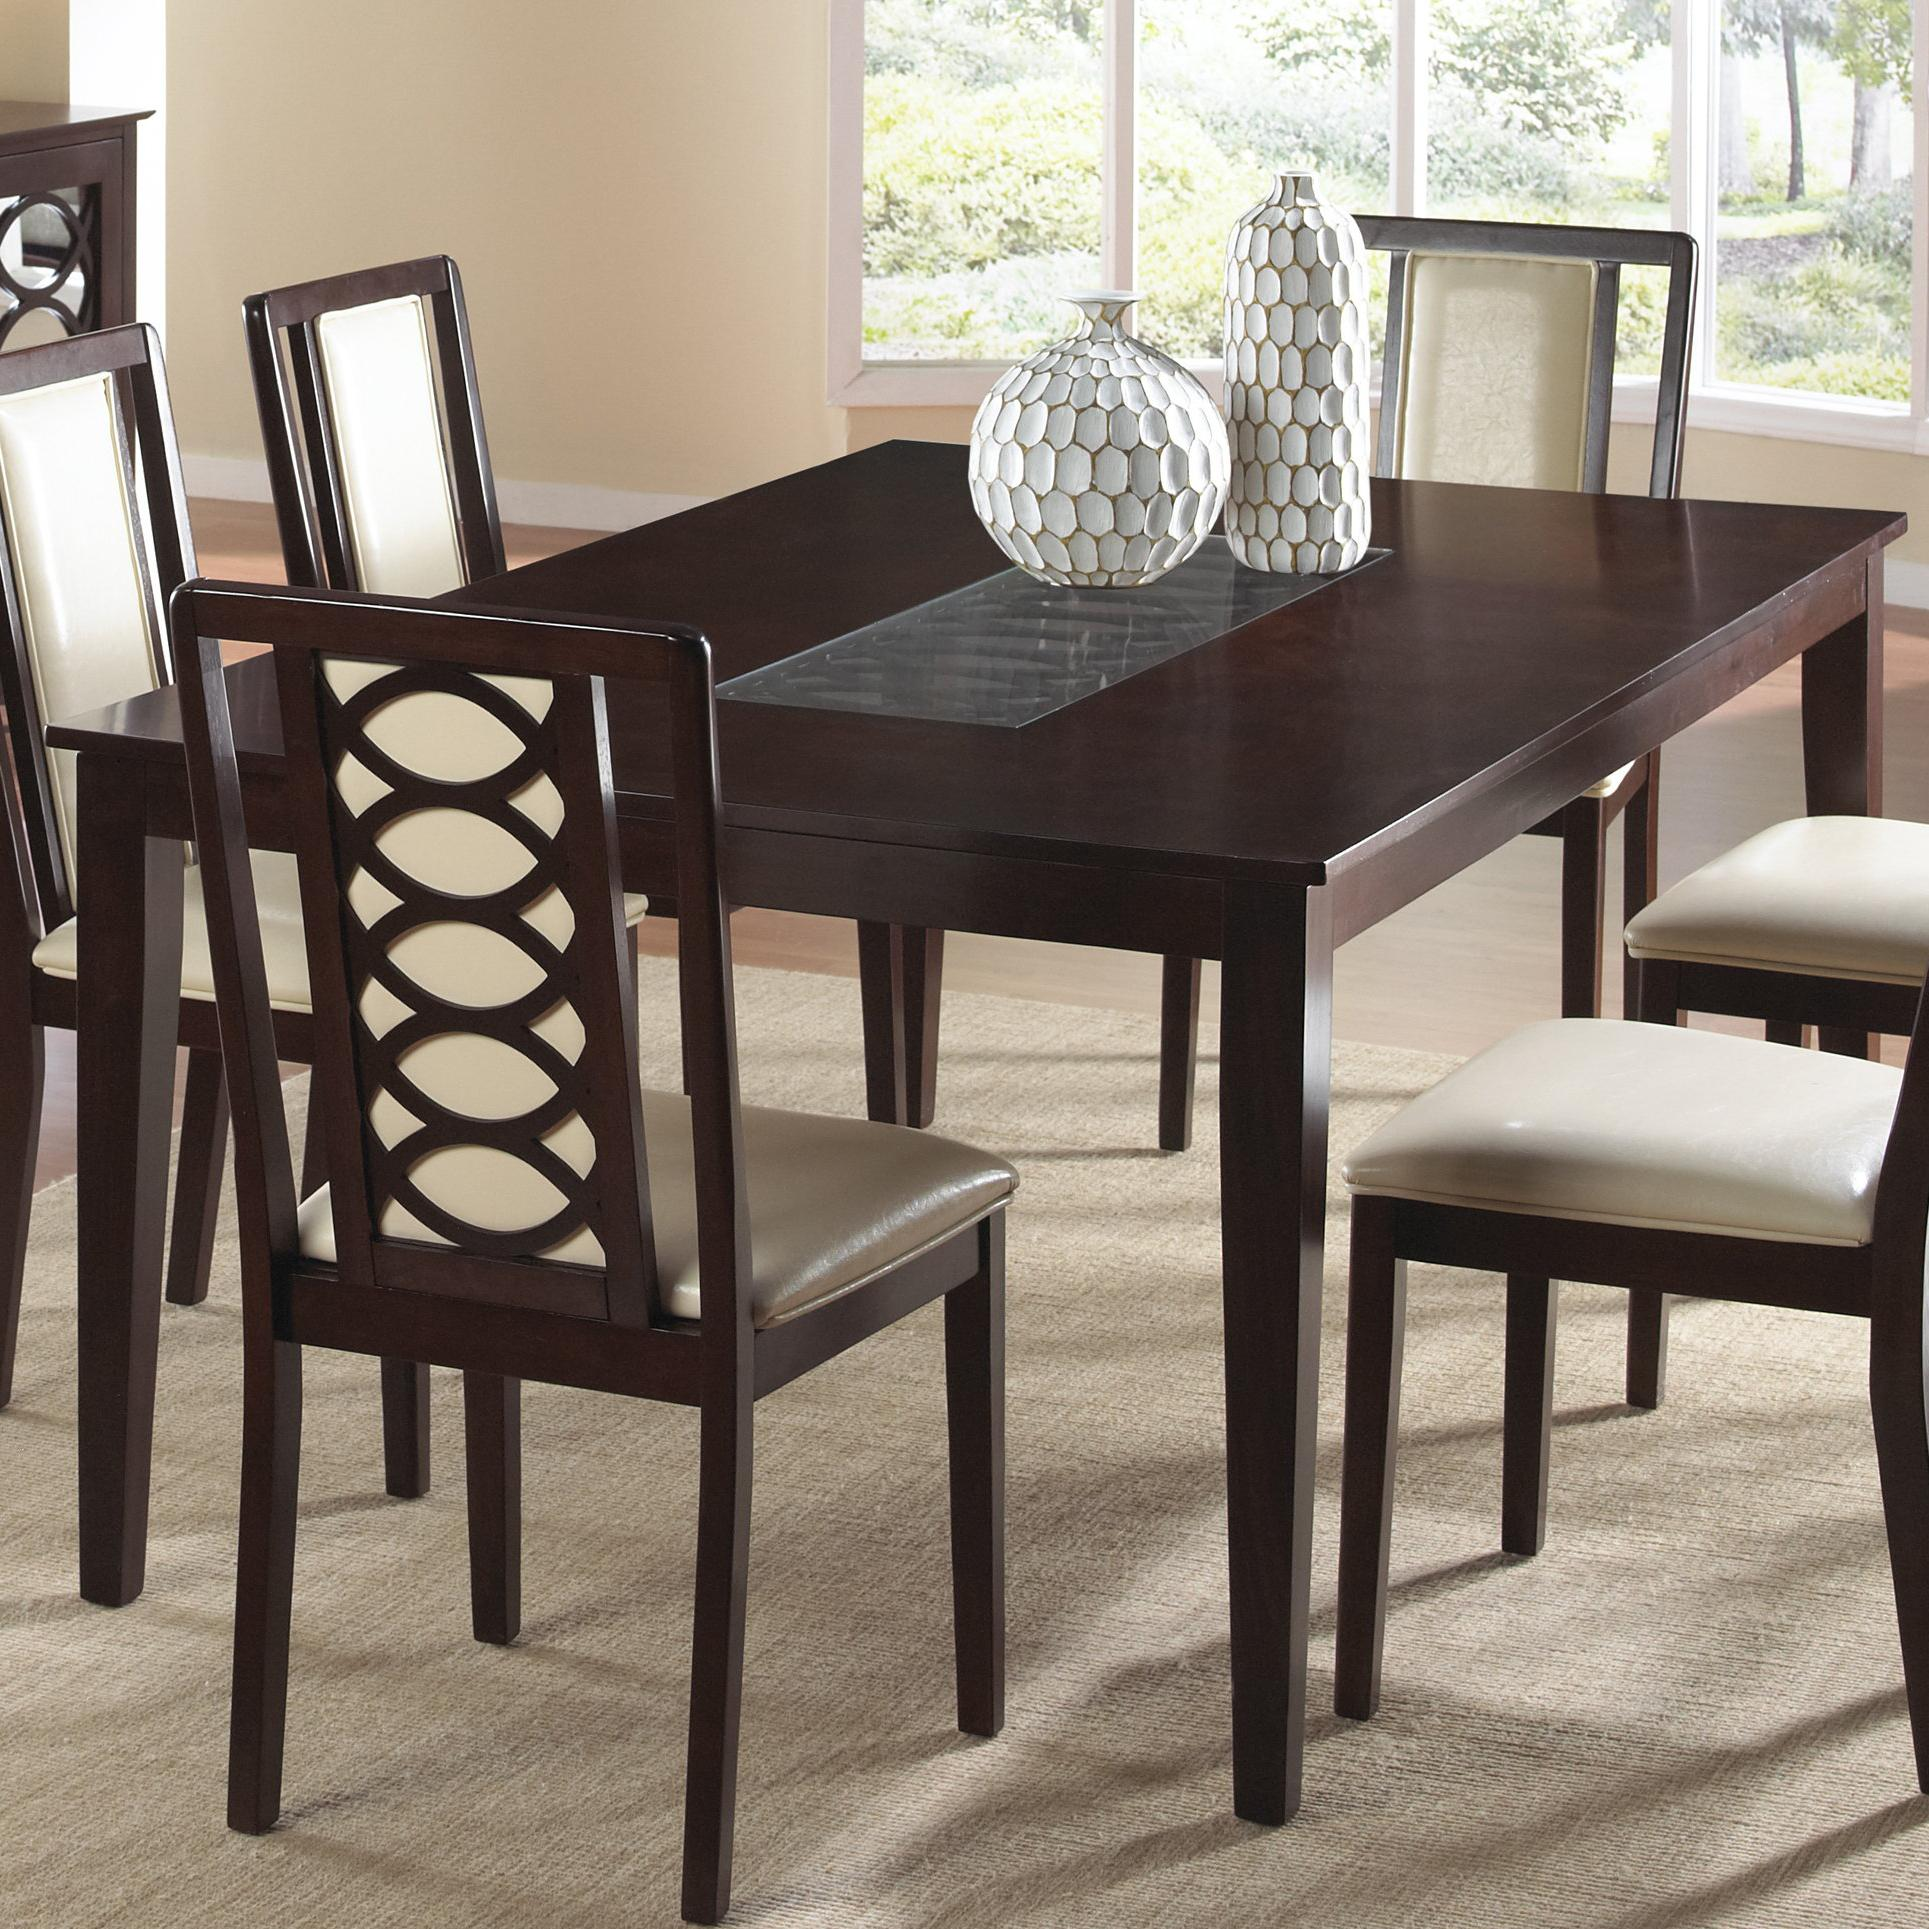 Cramco, Inc Jasmyn Rectangular Wood Table - Item Number: SG268-66